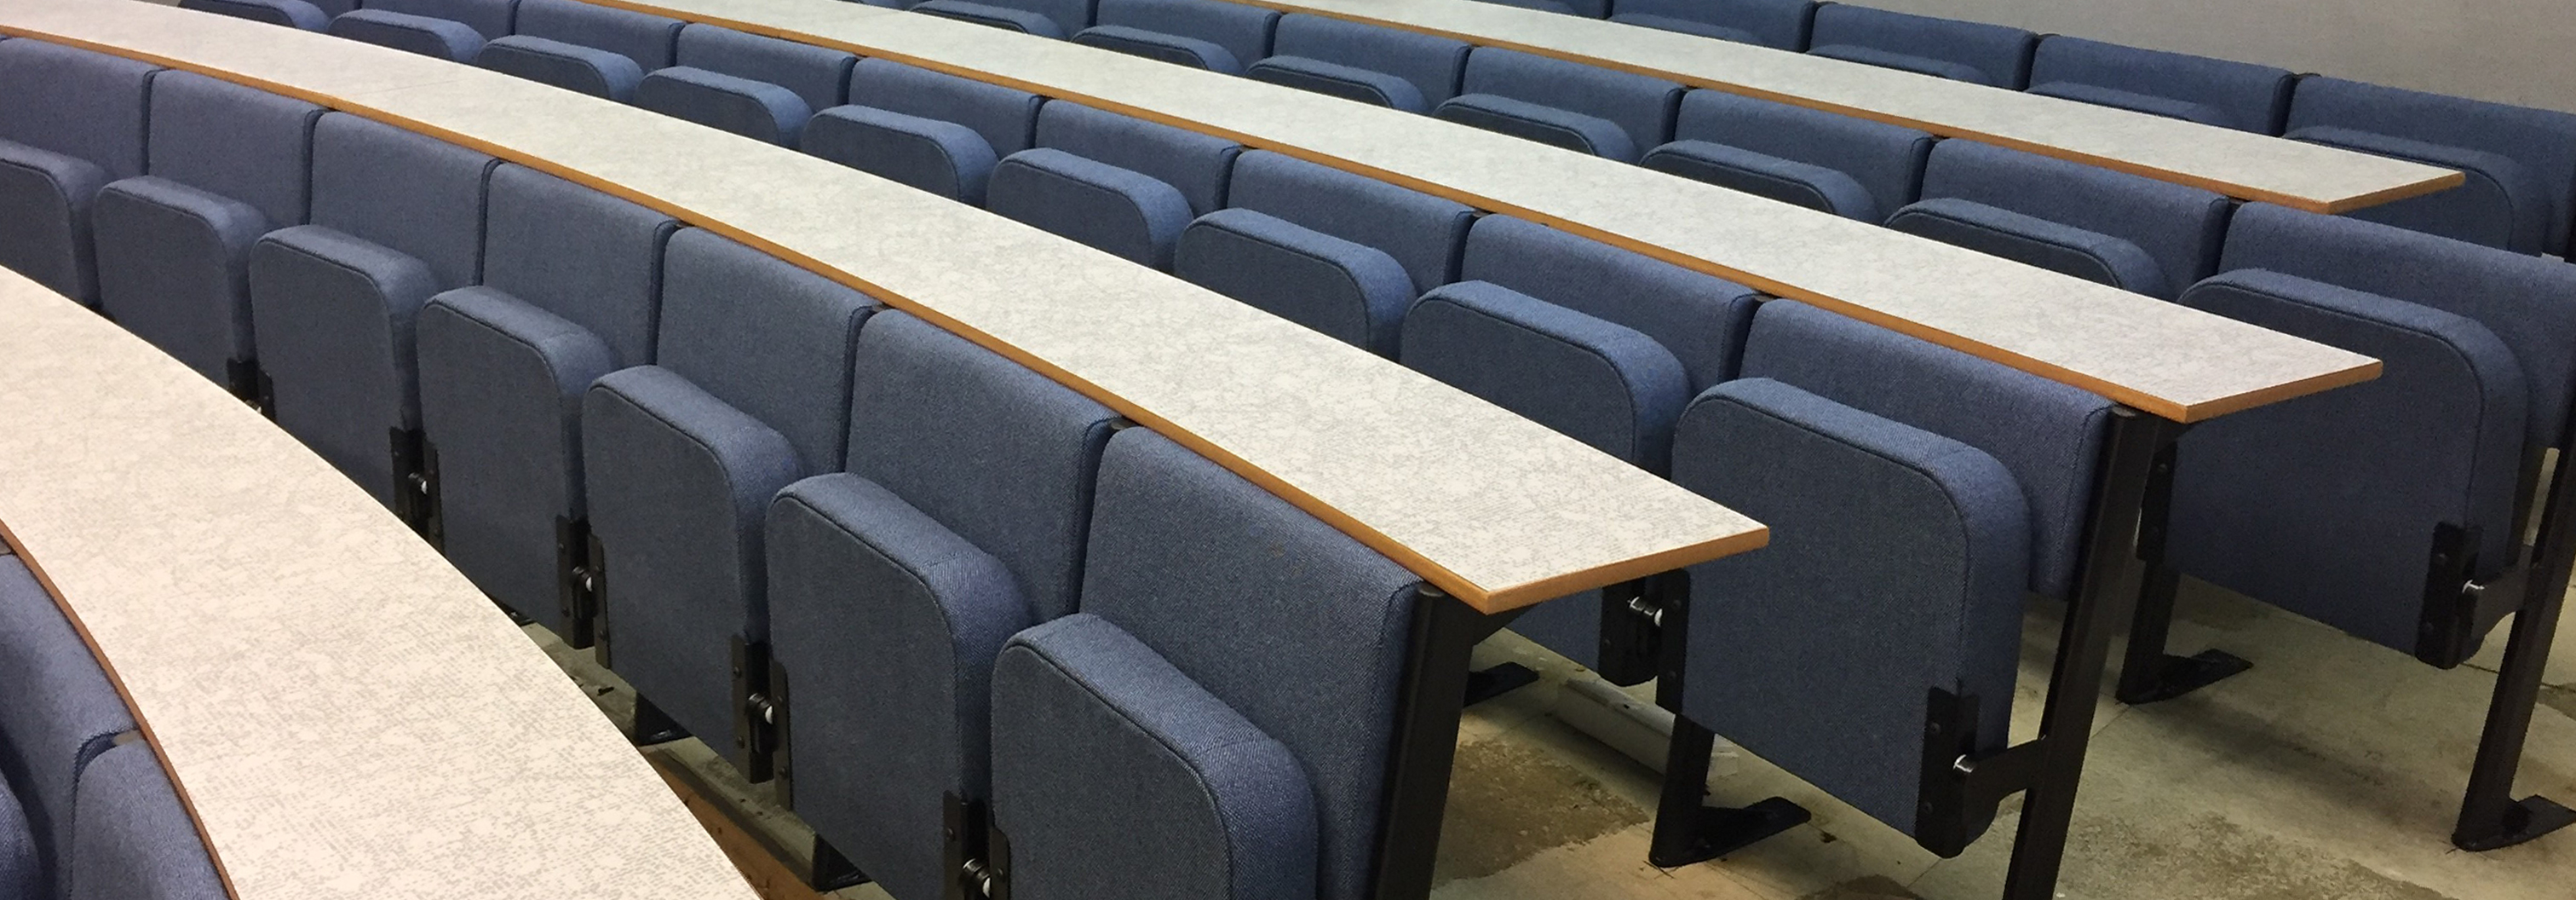 Evertaut Diploma lecture theatre seating upholstered in Tuscany